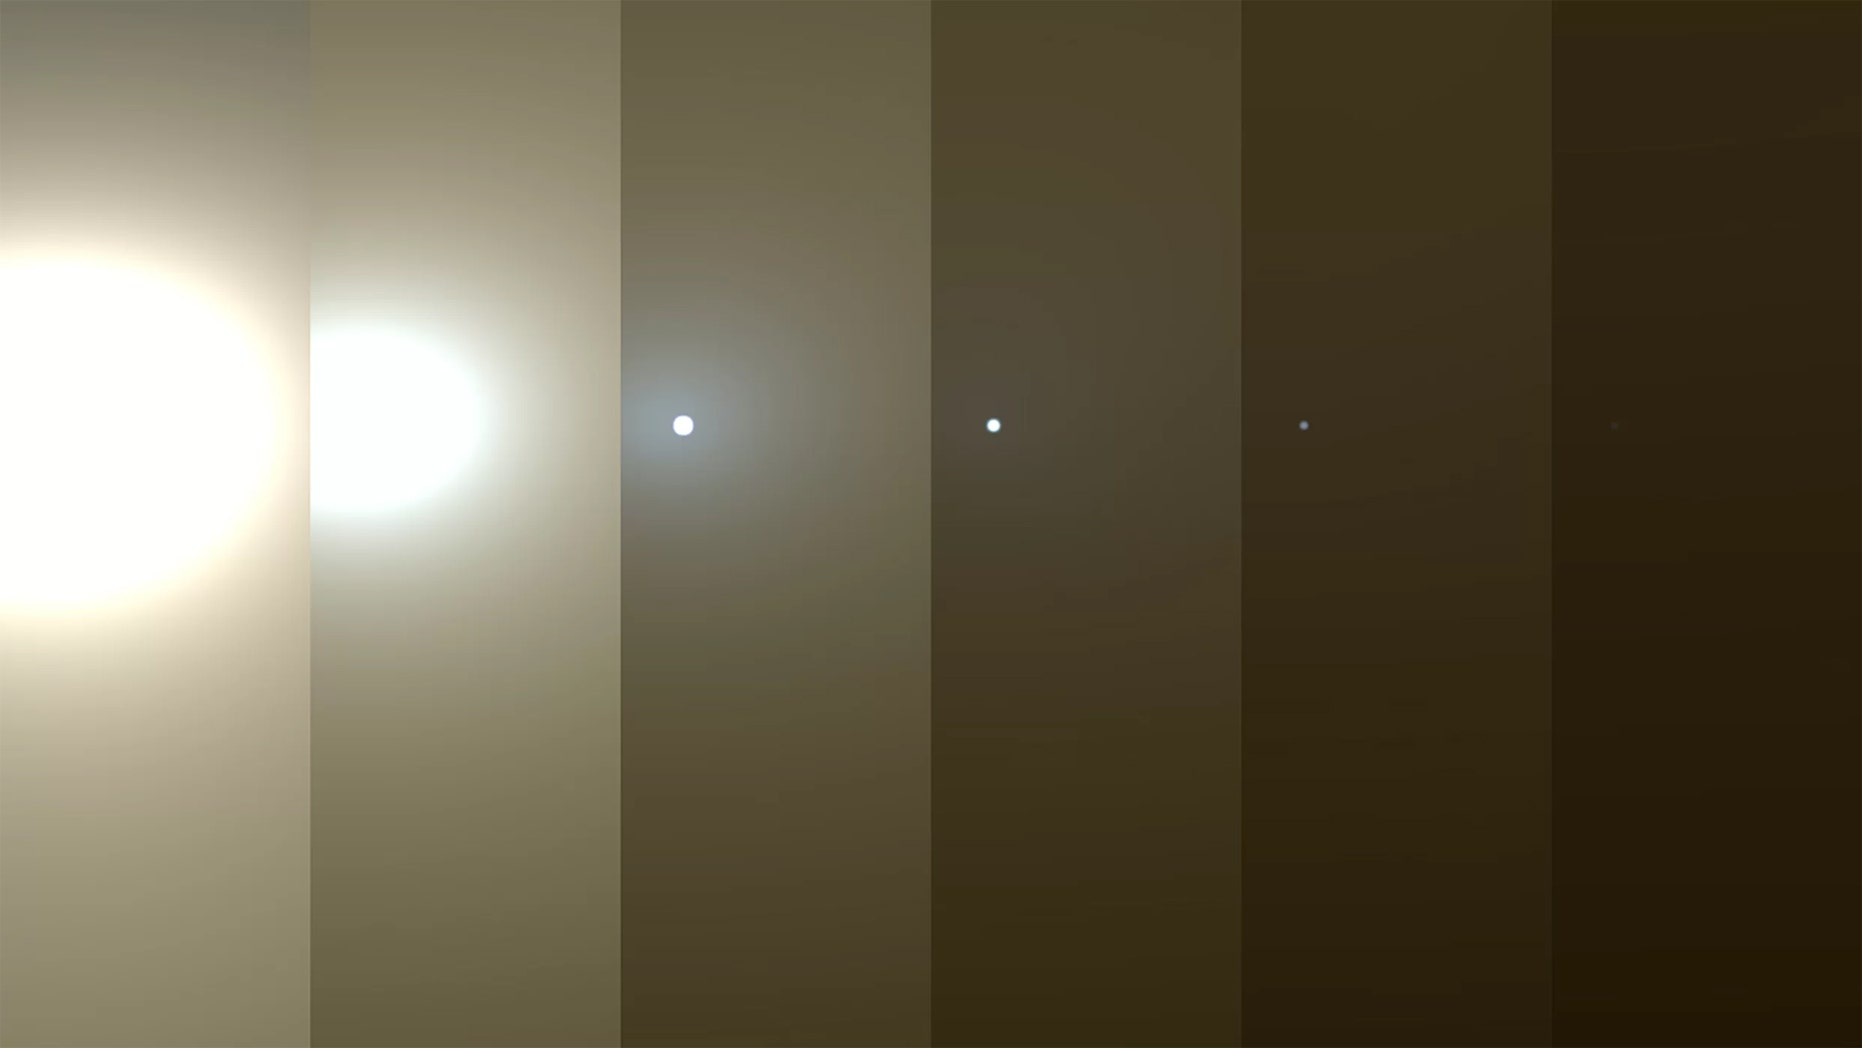 This series of images from NASA's Opportunity rover on Mars shows the effects of a huge dust storm blotting out the sun on the Red Planet in June 2018. At left, the sun appears blindingly bright but darkens as the dust storm intensifies. At the far right, the sun is a mere pinprick, with the dust storm in full swing. Credit: NASA/JPL-Caltech/TAMU